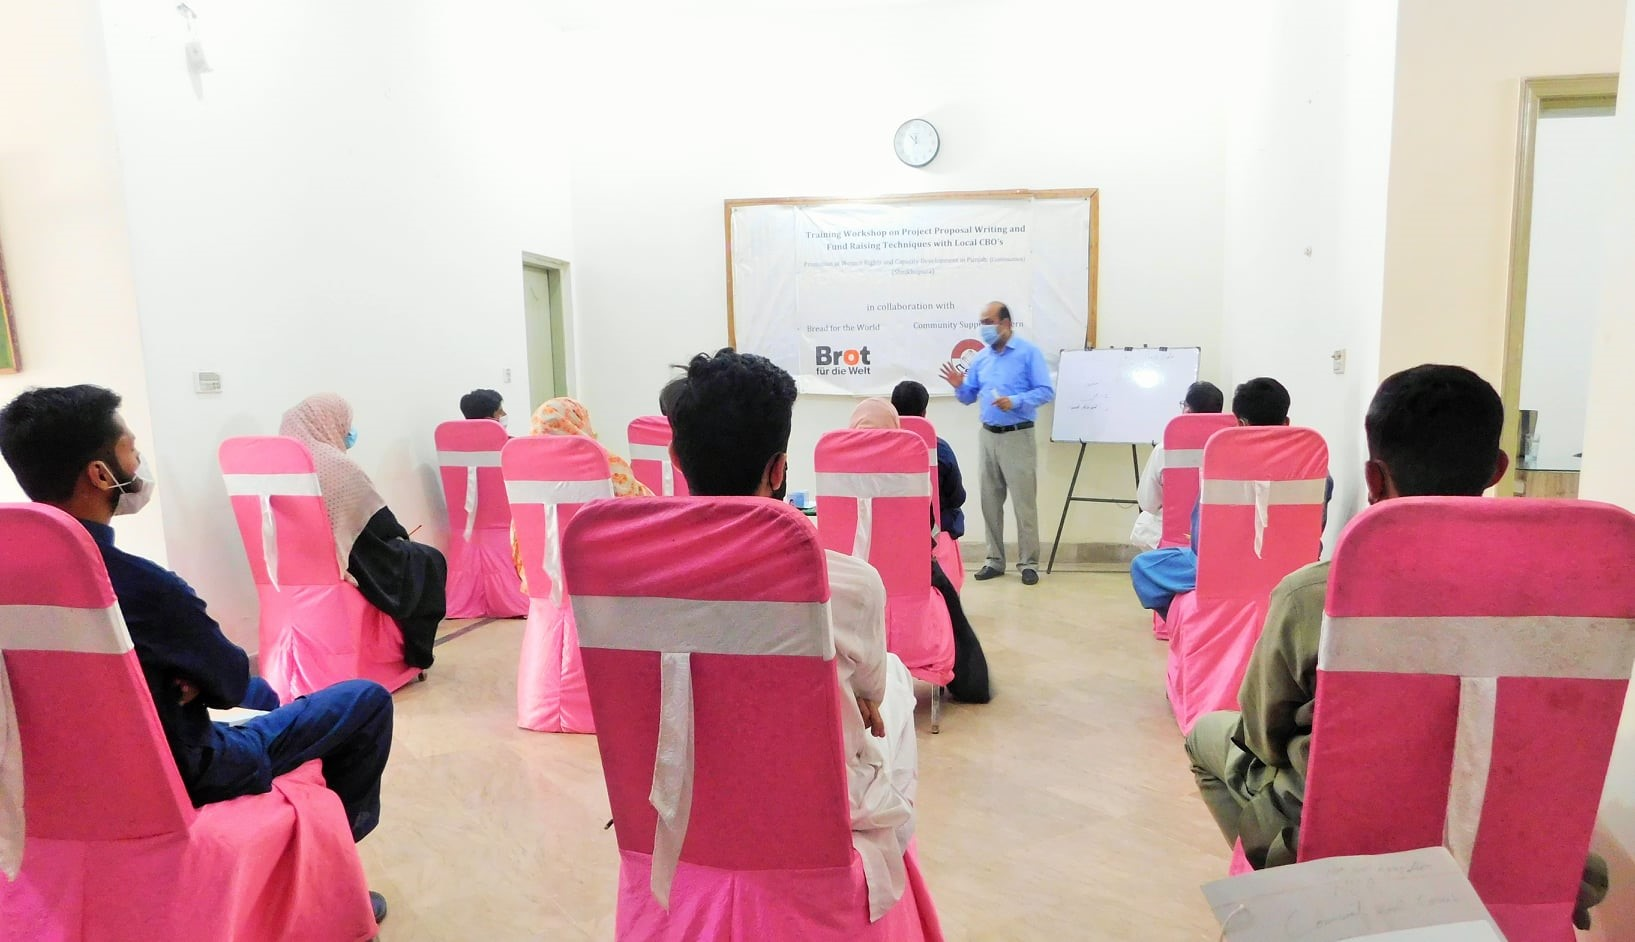 Training Workshop on Proposal Writing and Fund Raising Techniques for PWRCDP Project Sustainability